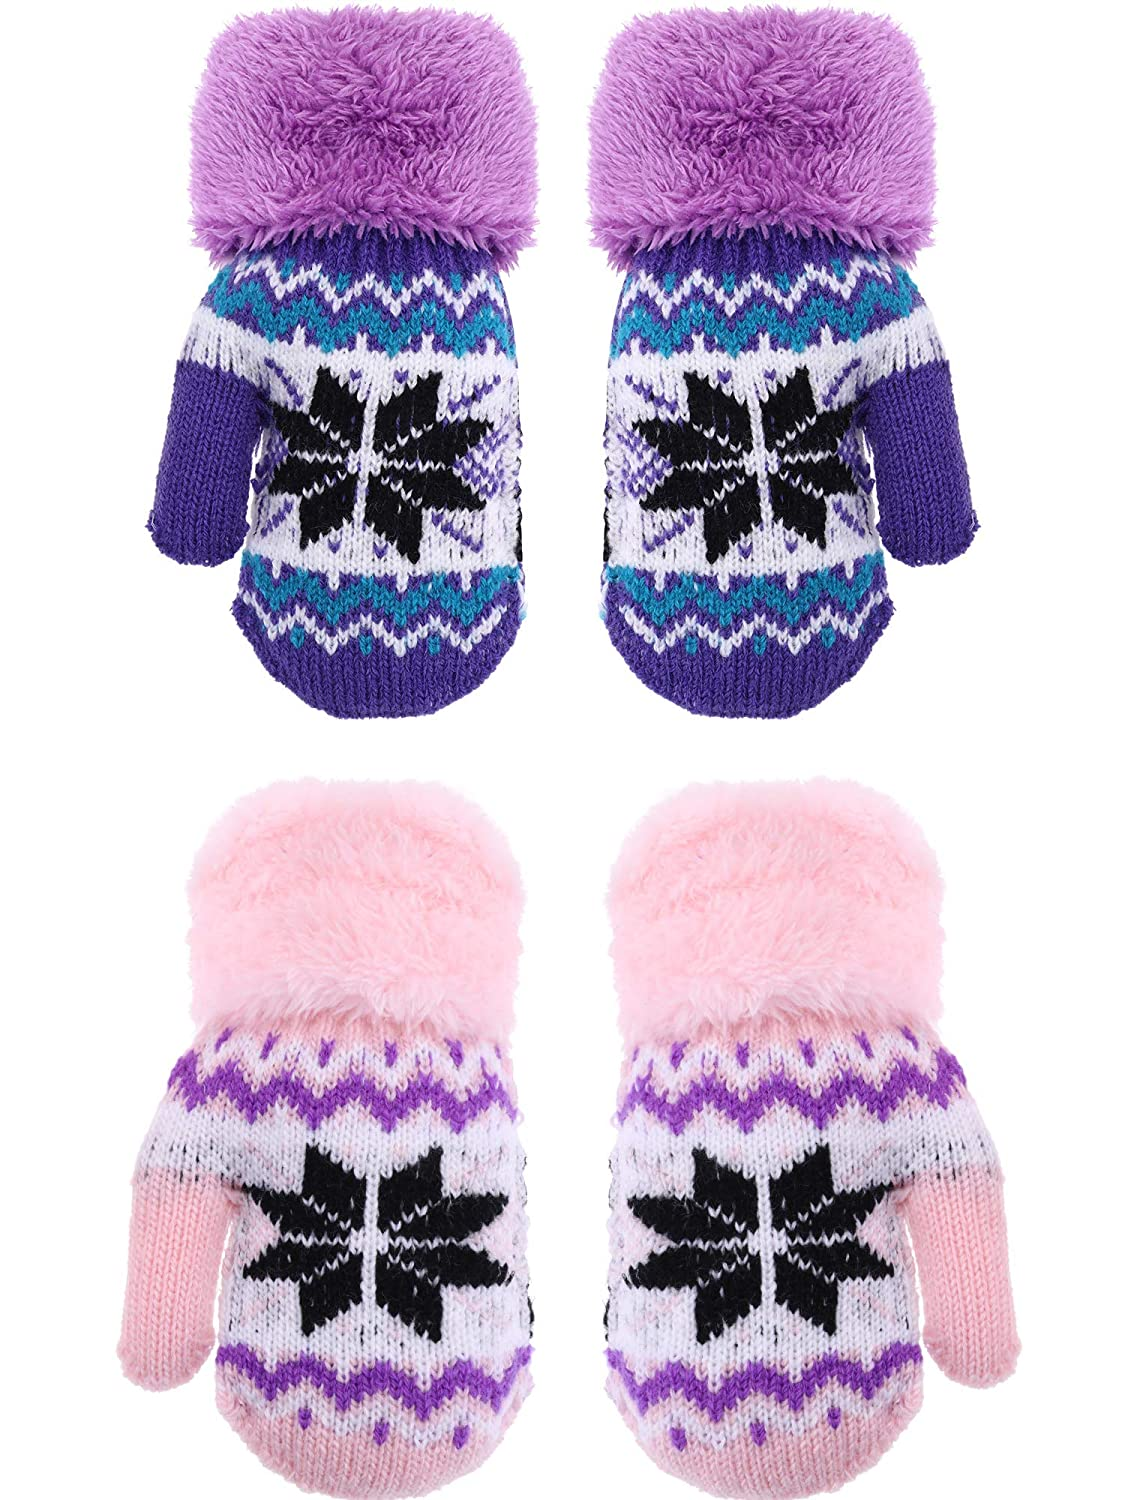 Boao 2 Pairs Kids Winter Gloves Full Fingers Knit Mittens Snowflake Pattern Warm Gloves for 2-5 Years Supplies